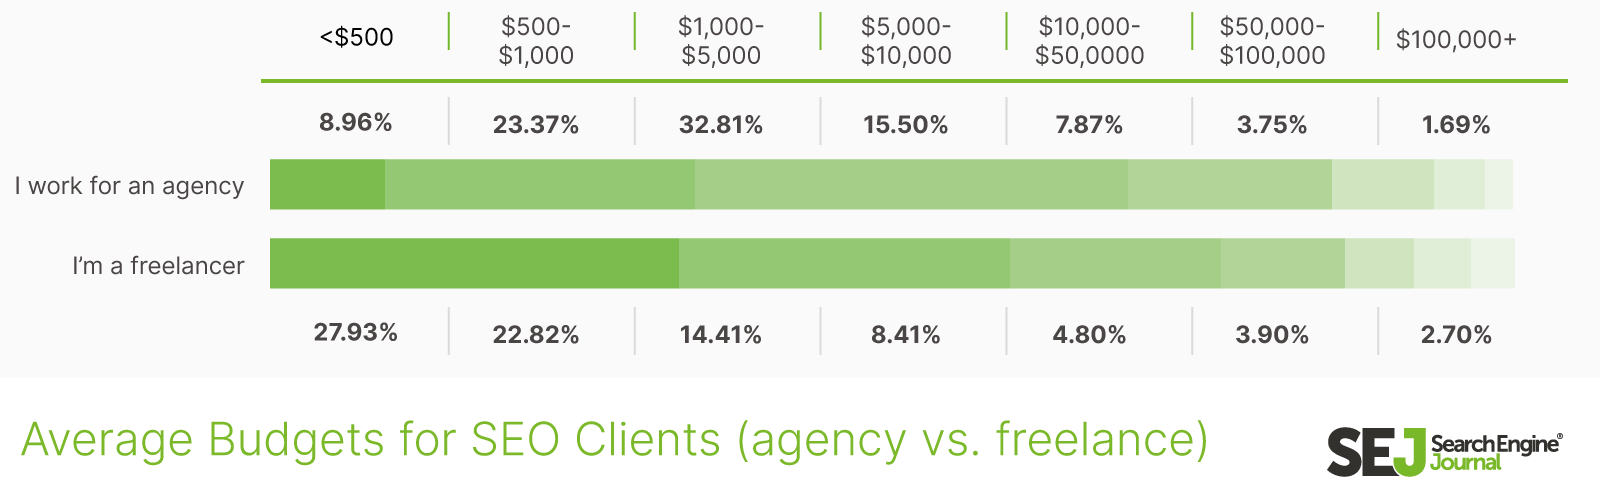 average budgets for SEO clients, agency vs. freelance